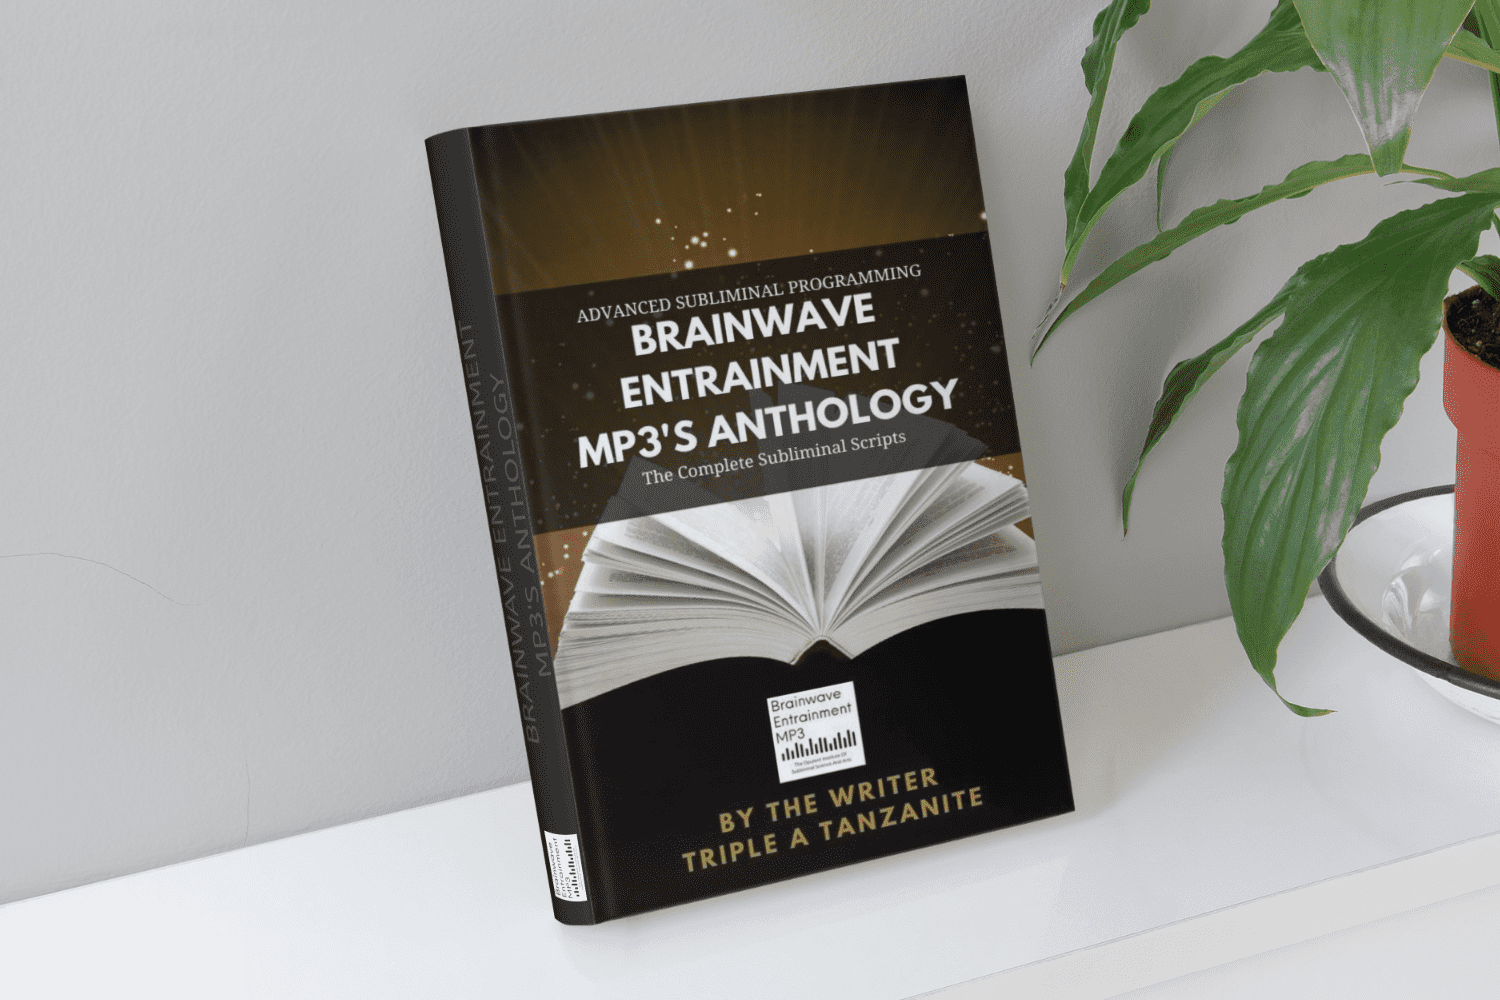 Brainwave Entrainment MP3's Anthology: The Complete Subliminal Scripts - Brainwave Entrainment MP3